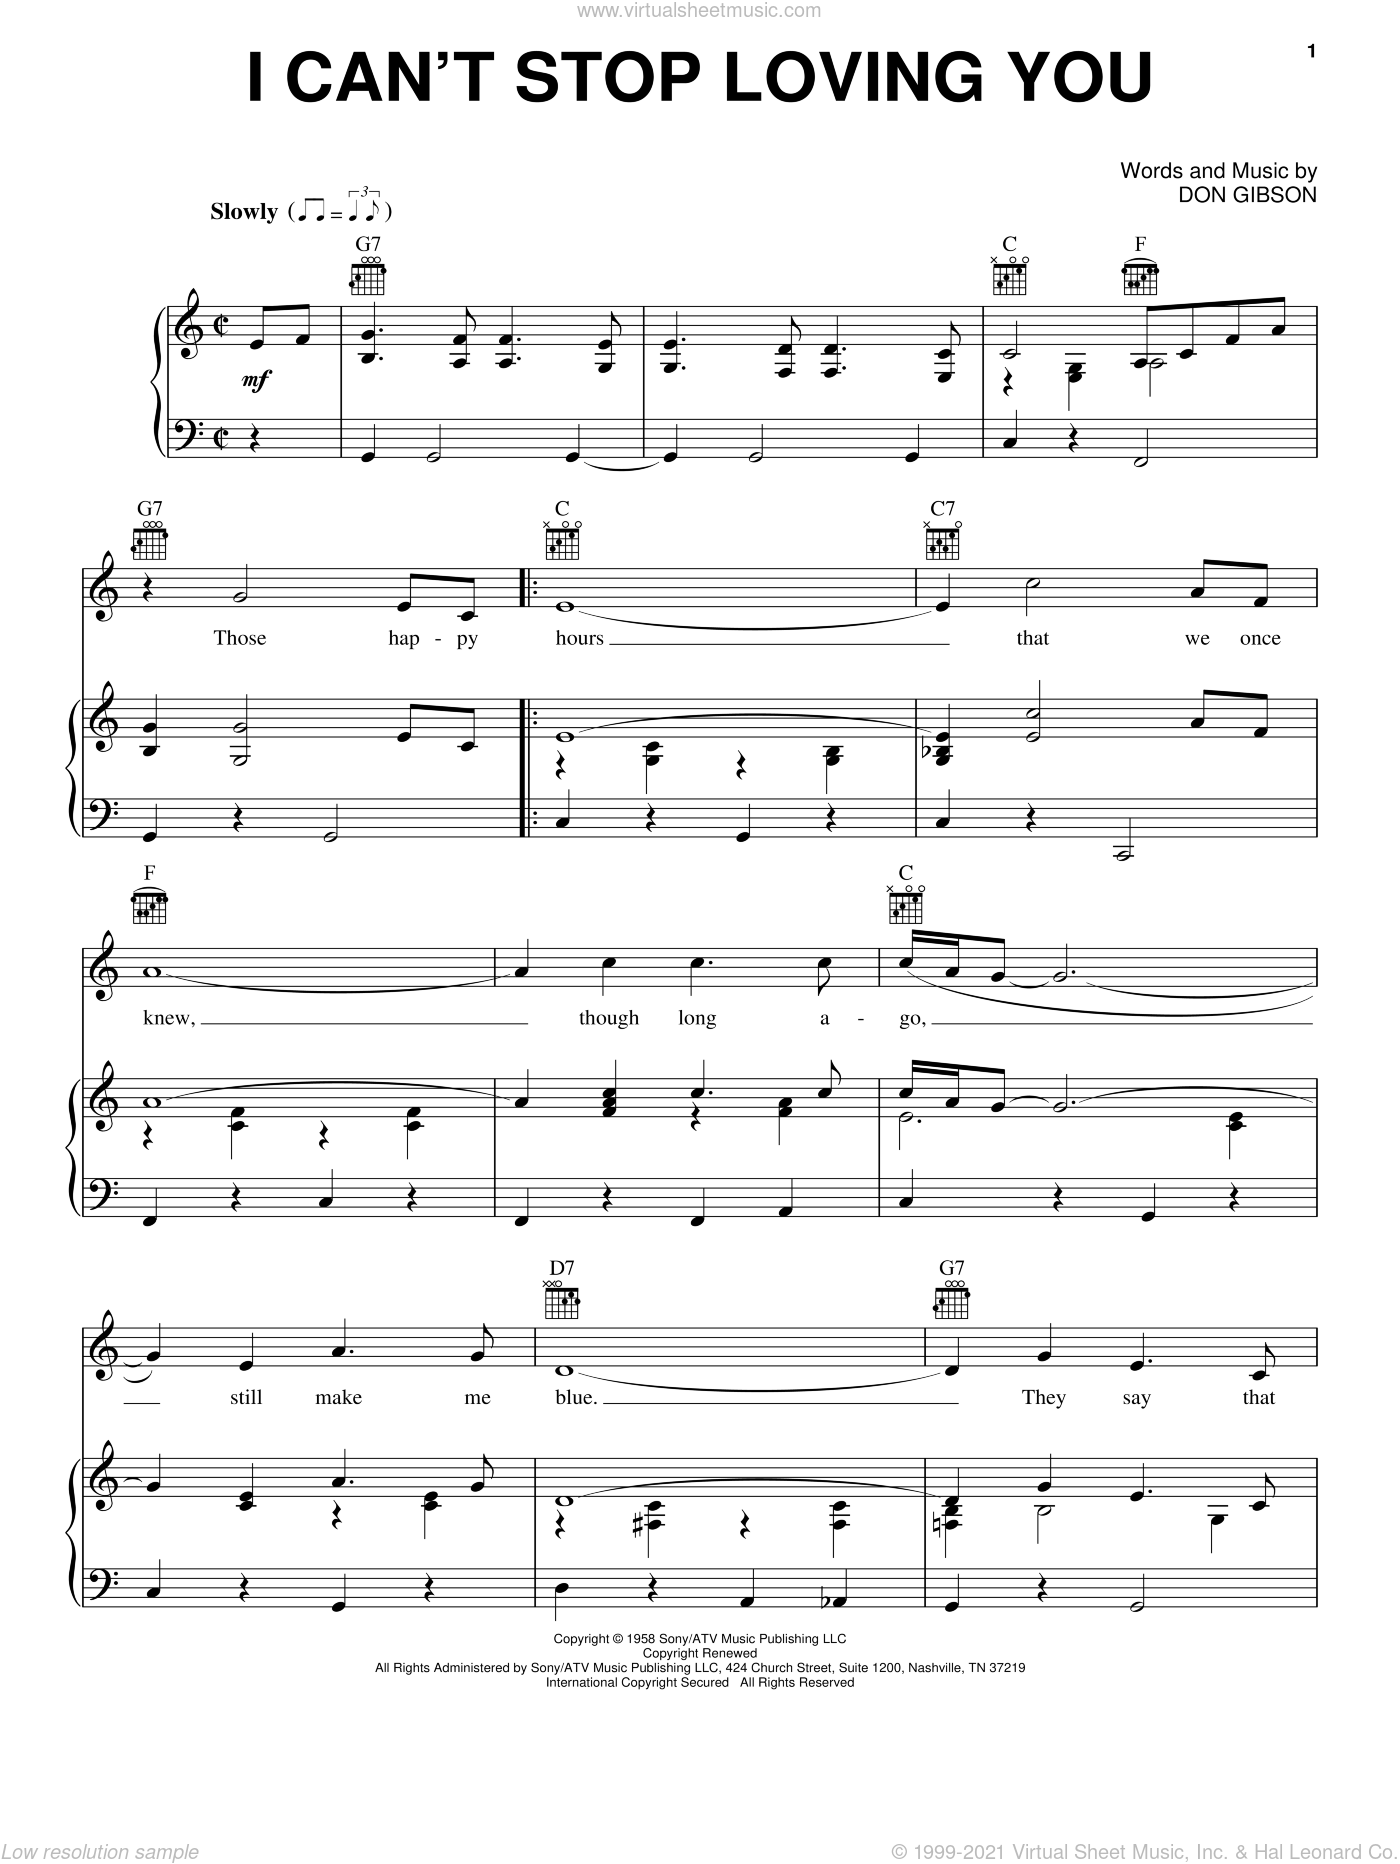 I Can't Stop Loving You sheet music for voice, piano or guitar by Elvis Presley, Ray Charles and Don Gibson, intermediate skill level